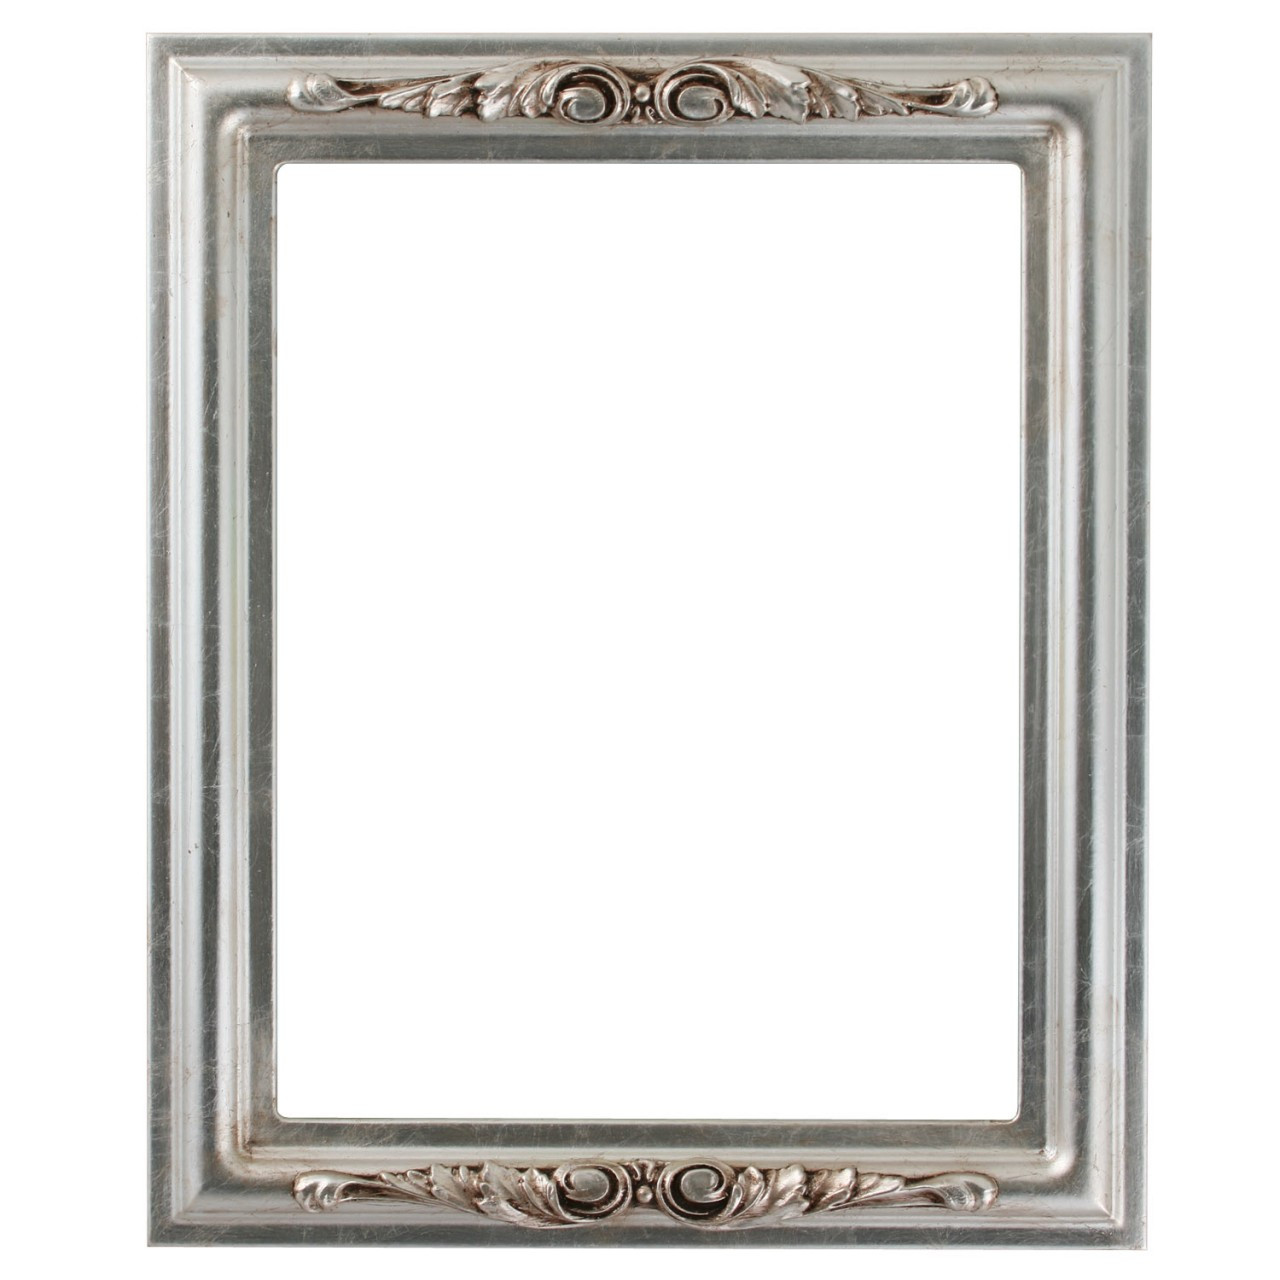 Rectangle Frame In Silver Leaf Finish With Brown Antique